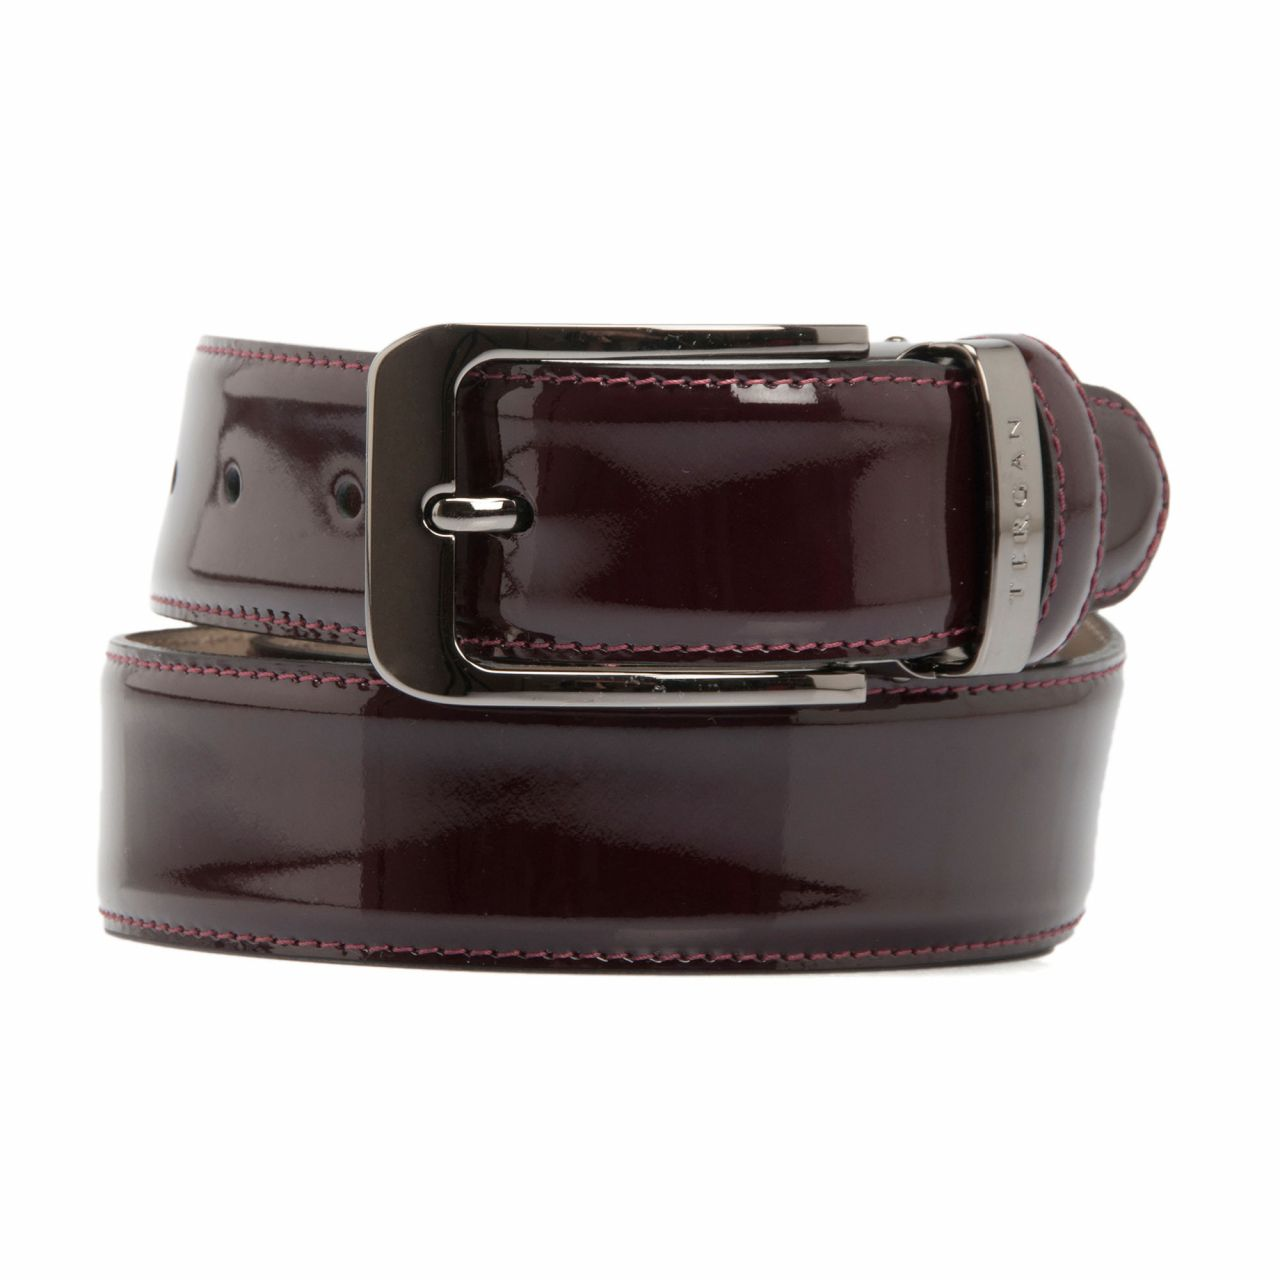 Luxury men's belt natural lacquer - burgundy